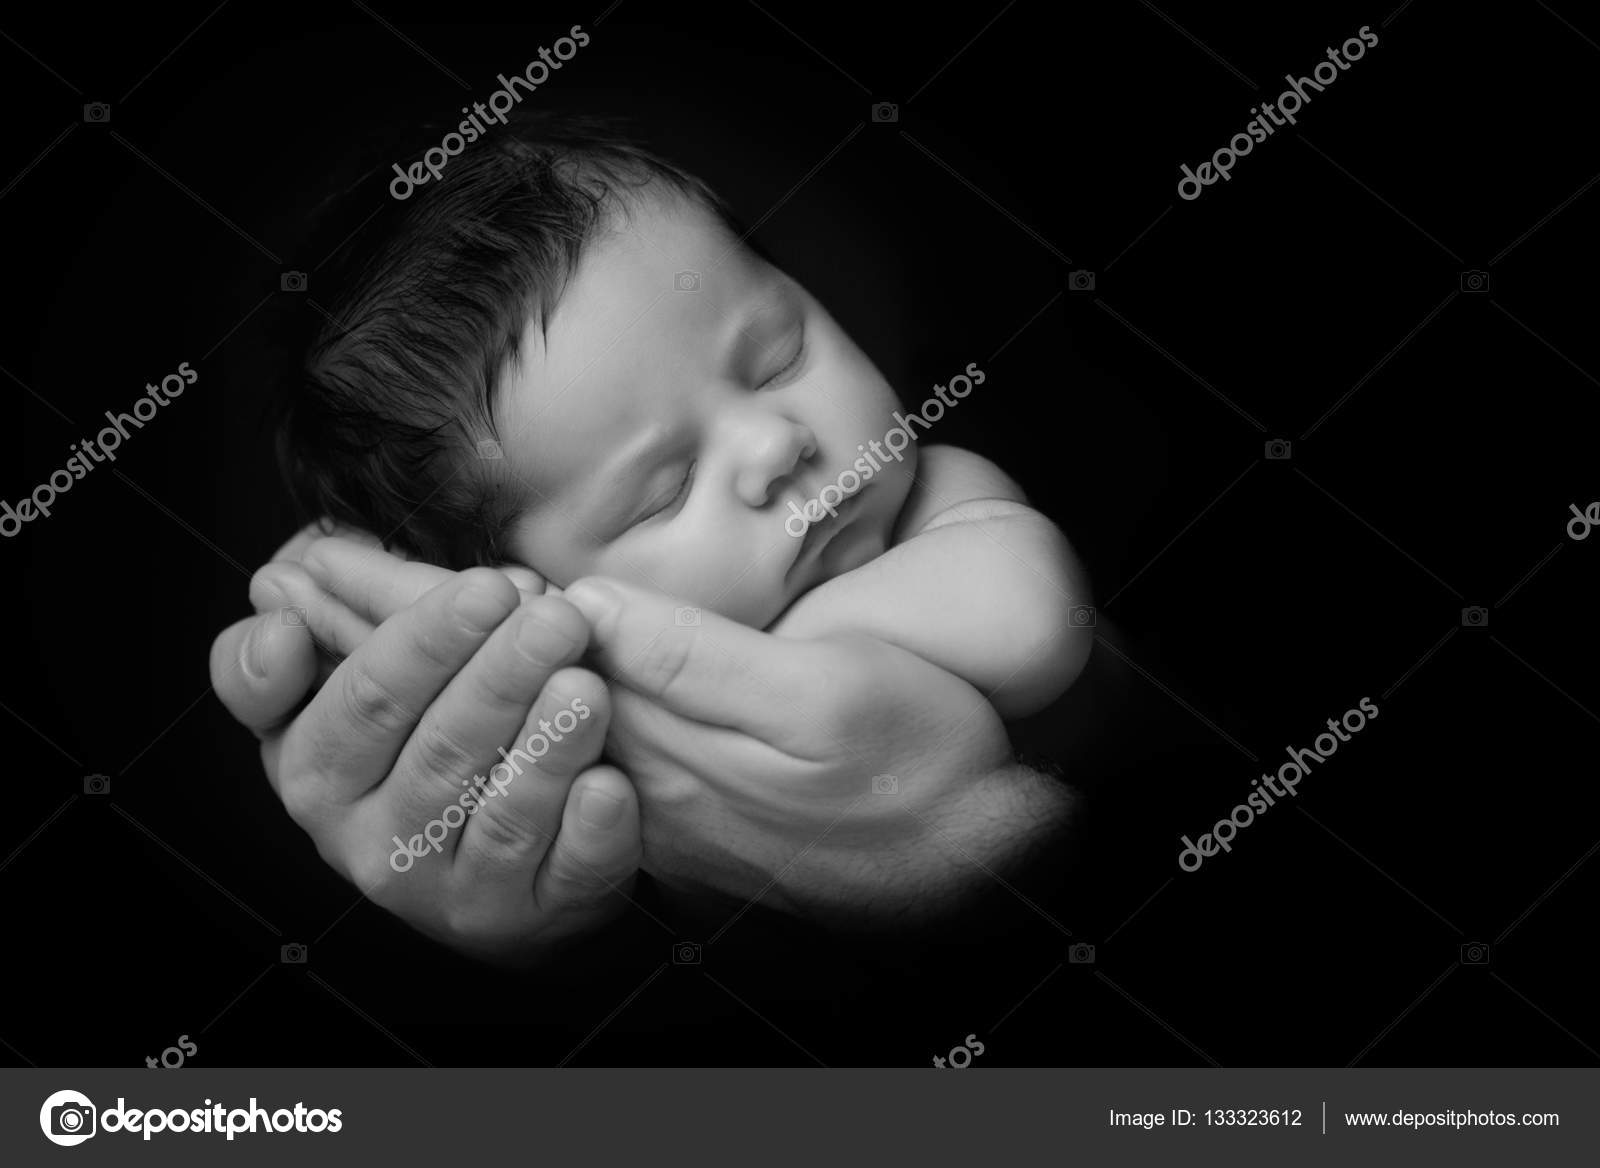 Newborn baby taken closeup in fathers hand black and white stock photo